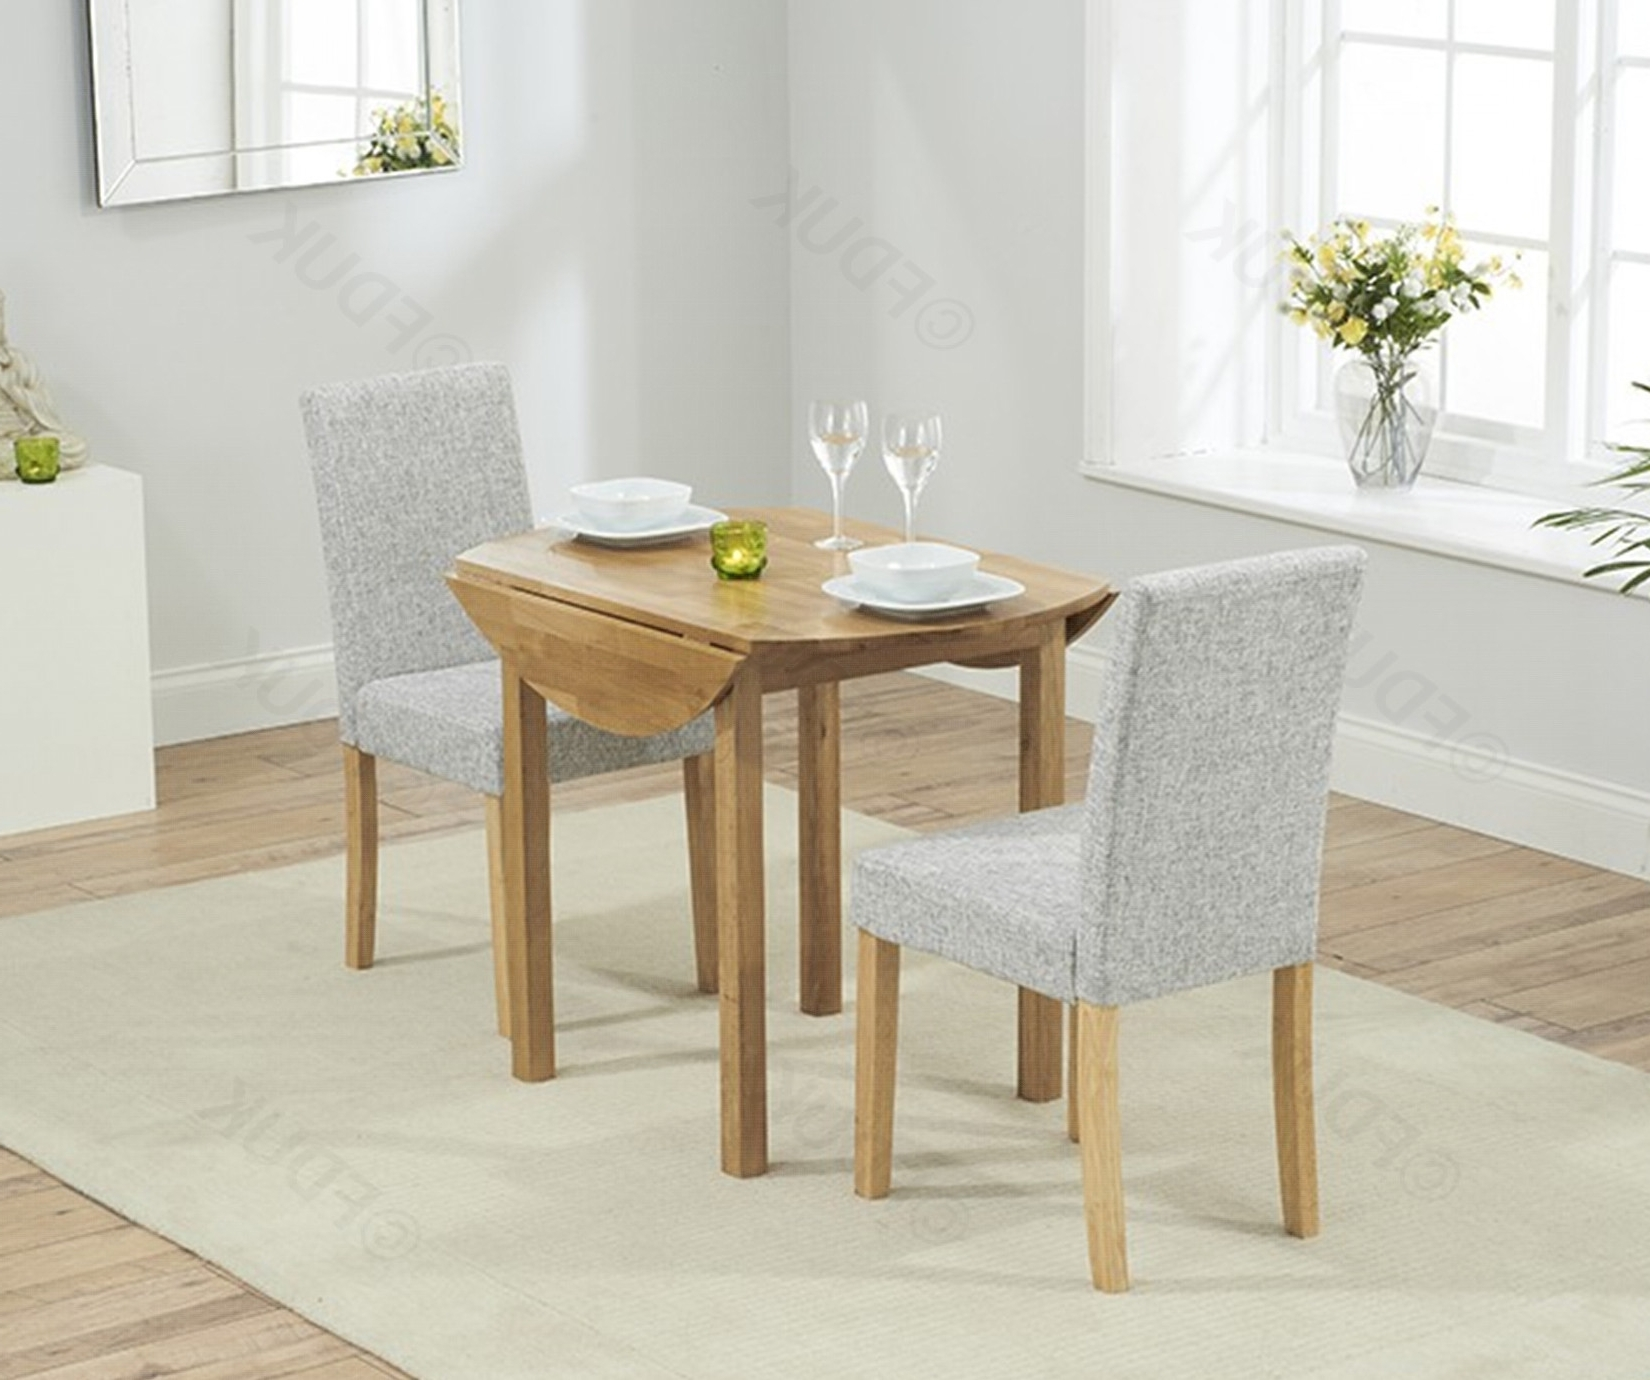 Promo Oak Round Extending Dining Table With 2 In Round Extending Oak Dining Tables And Chairs (View 22 of 25)